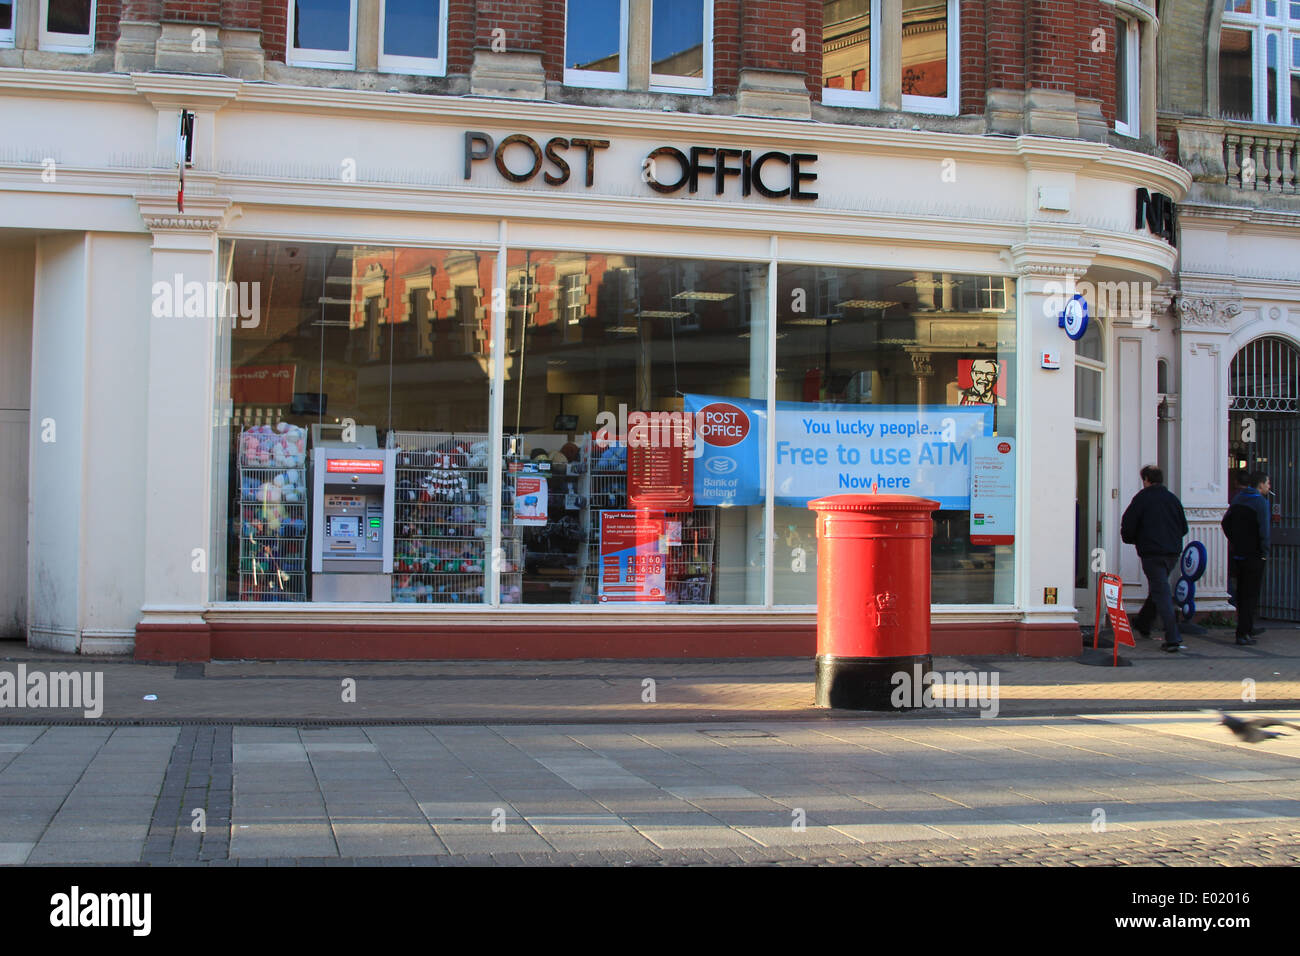 post office in boscombe bouremouth uk stock photo 68885410 alamy. Black Bedroom Furniture Sets. Home Design Ideas